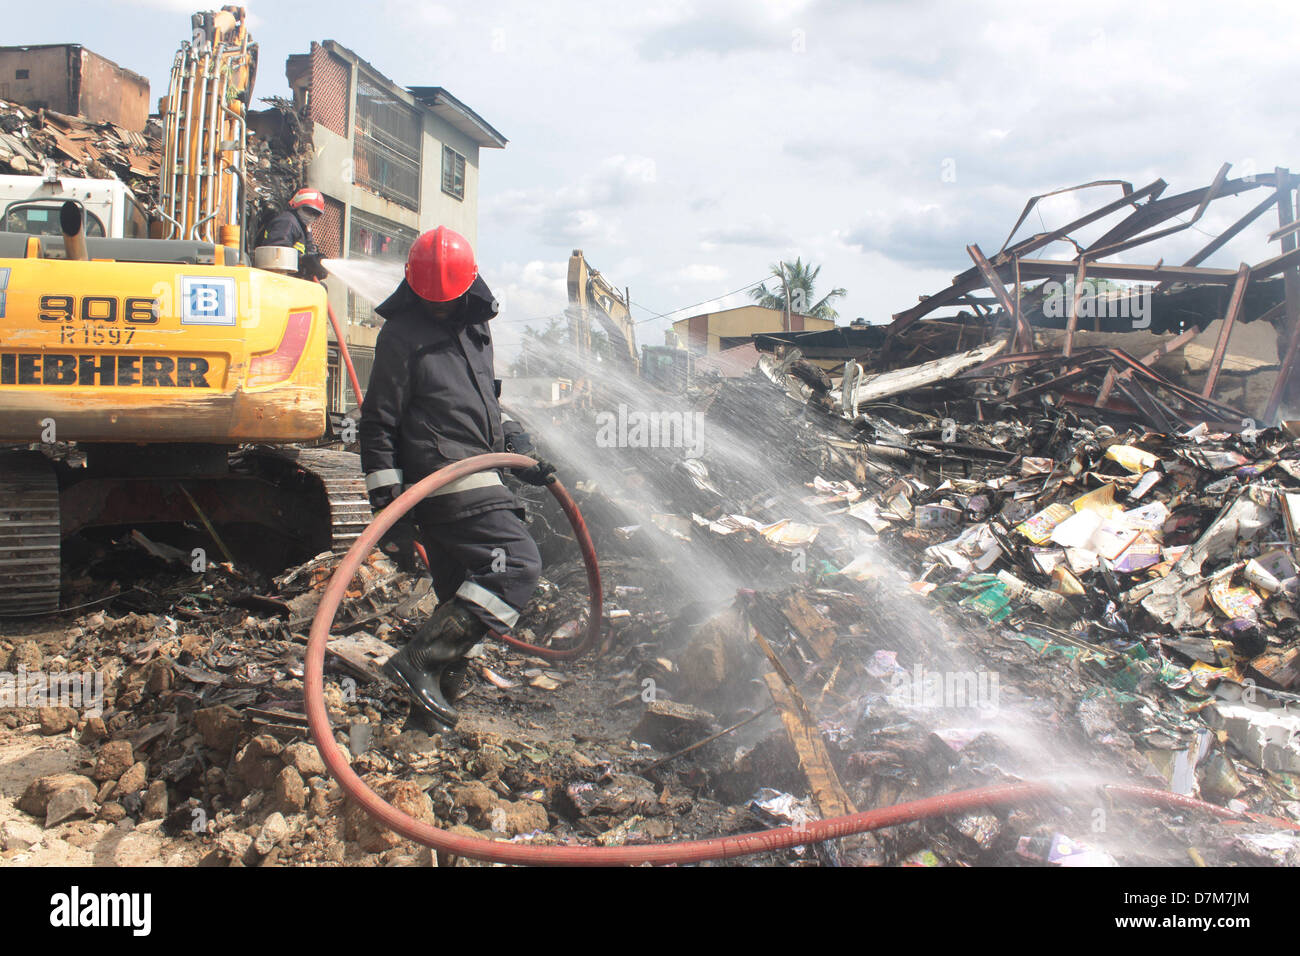 Fire officers putting out smoulder at the site of a recent aircraft crash at the outskirt of Lagos, Nigeria. - Stock Image